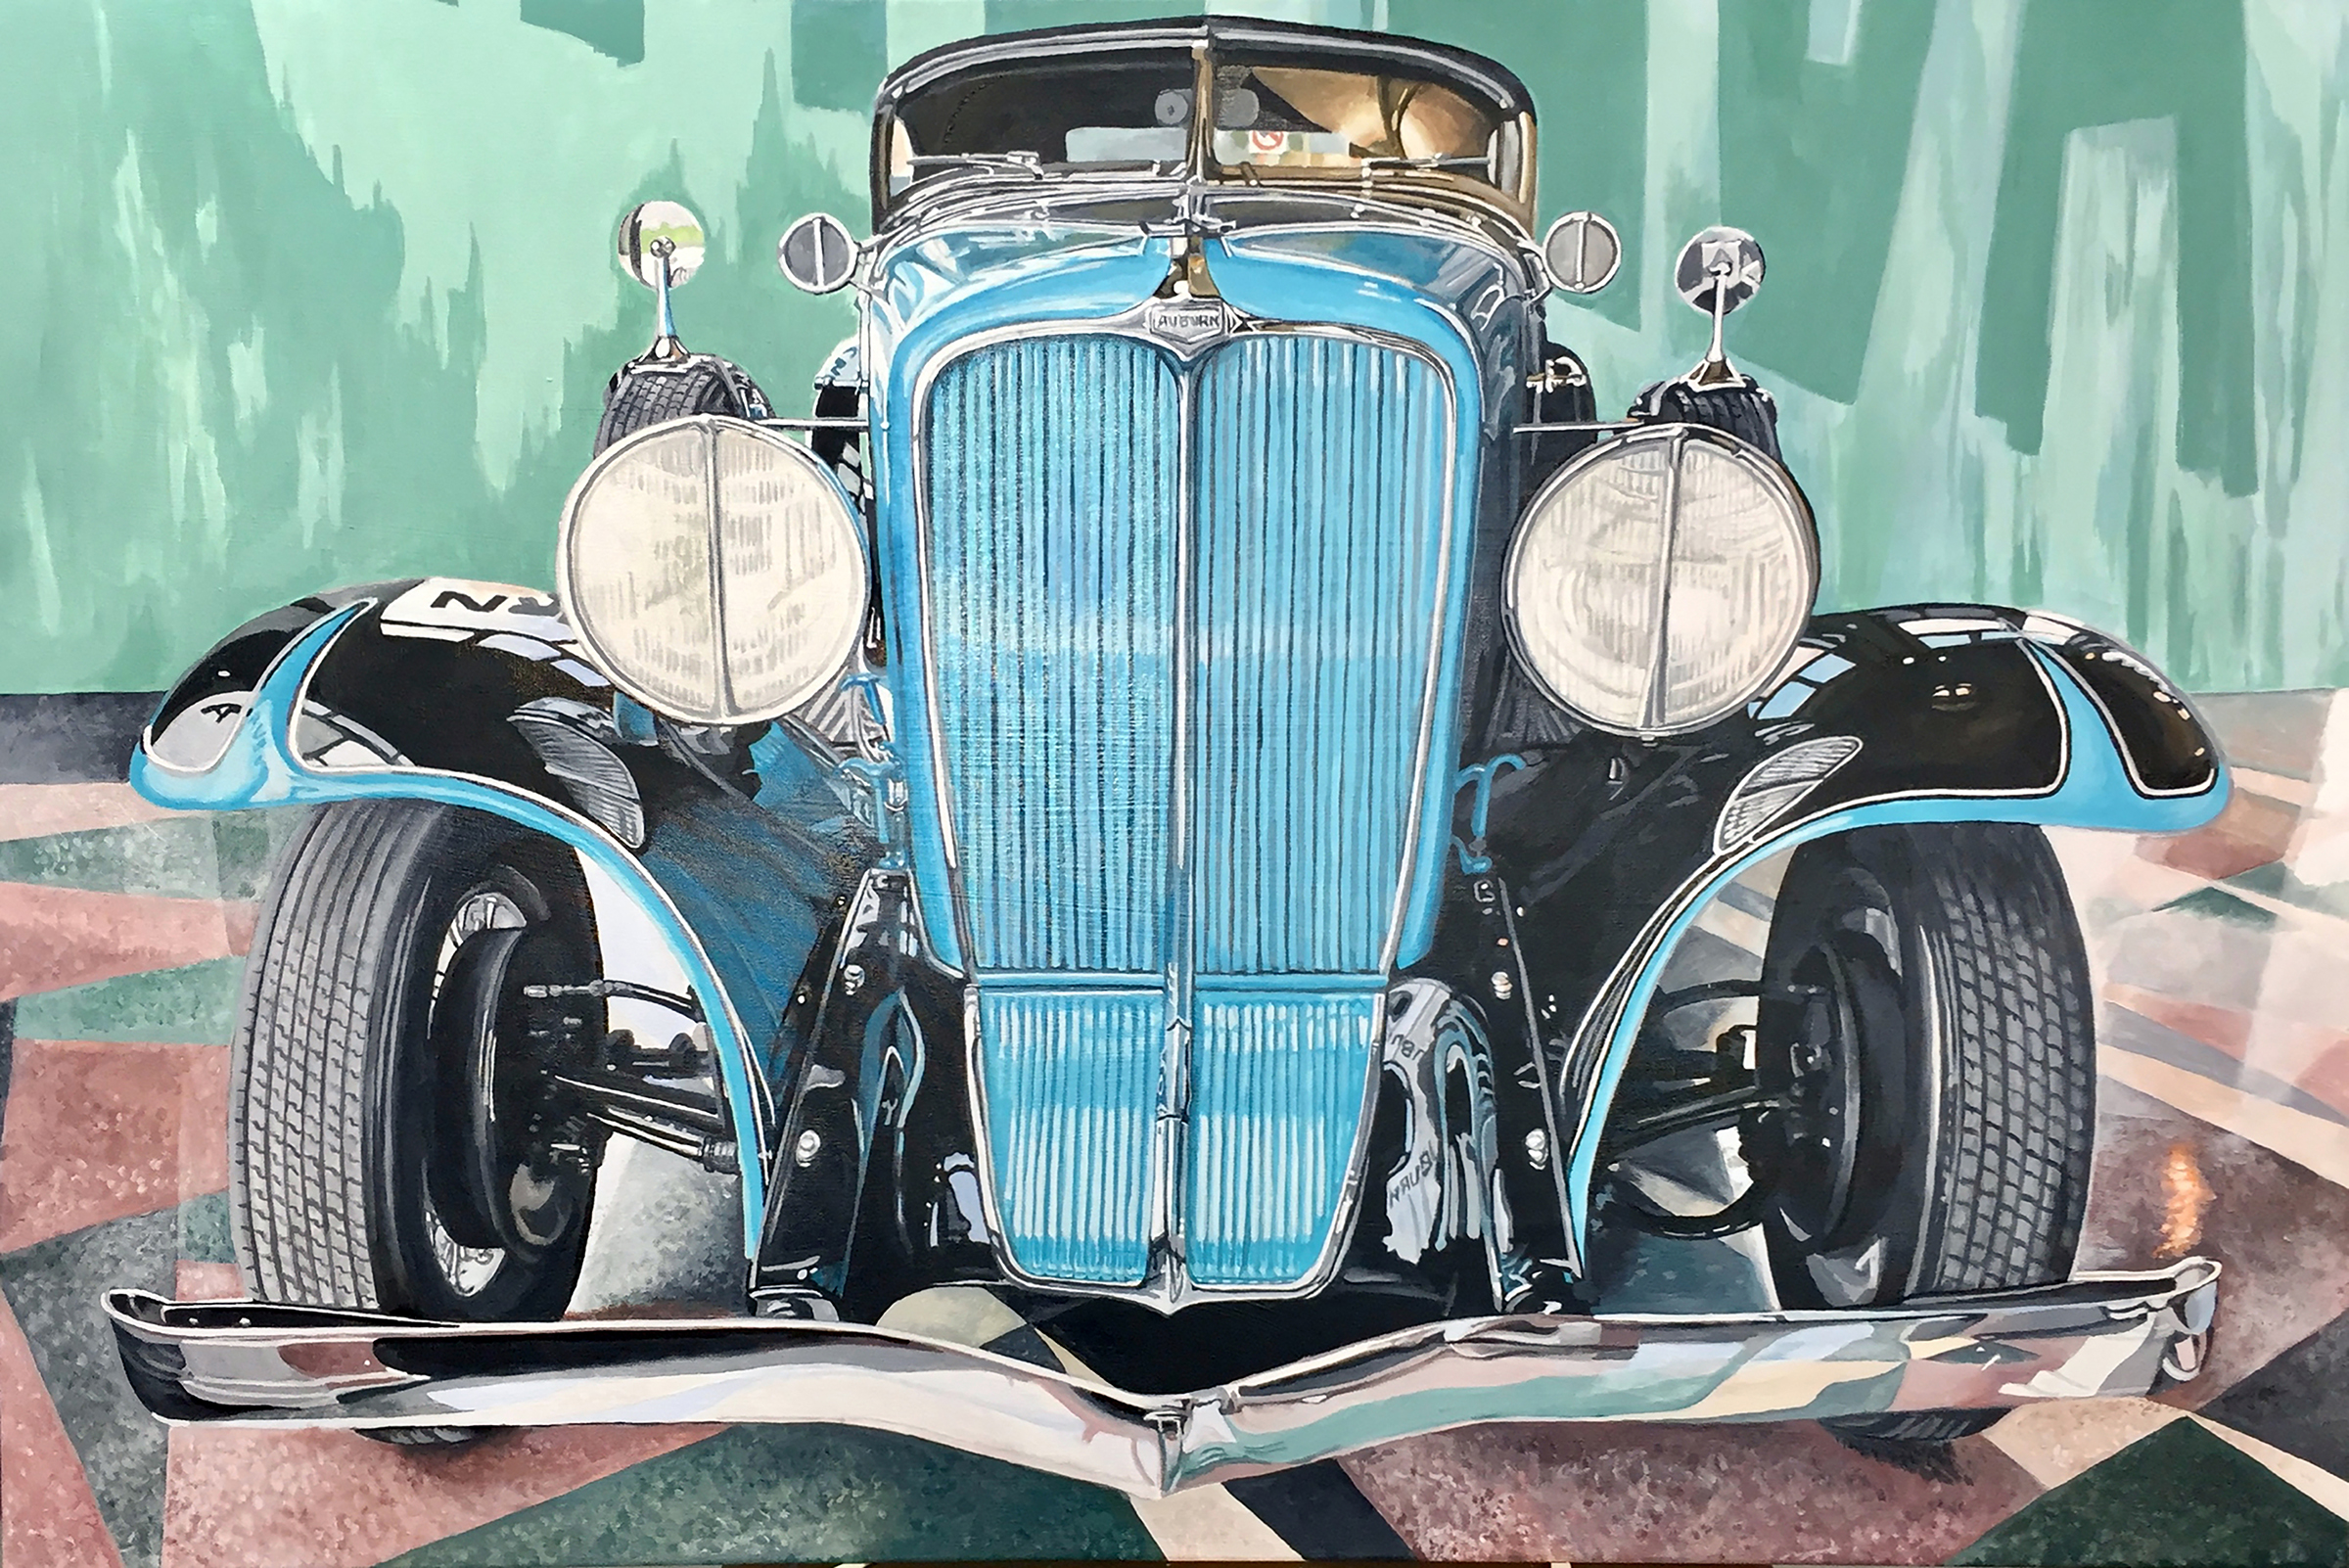 1934 Auburn Roadster acrylic on canvas, 48x32 in